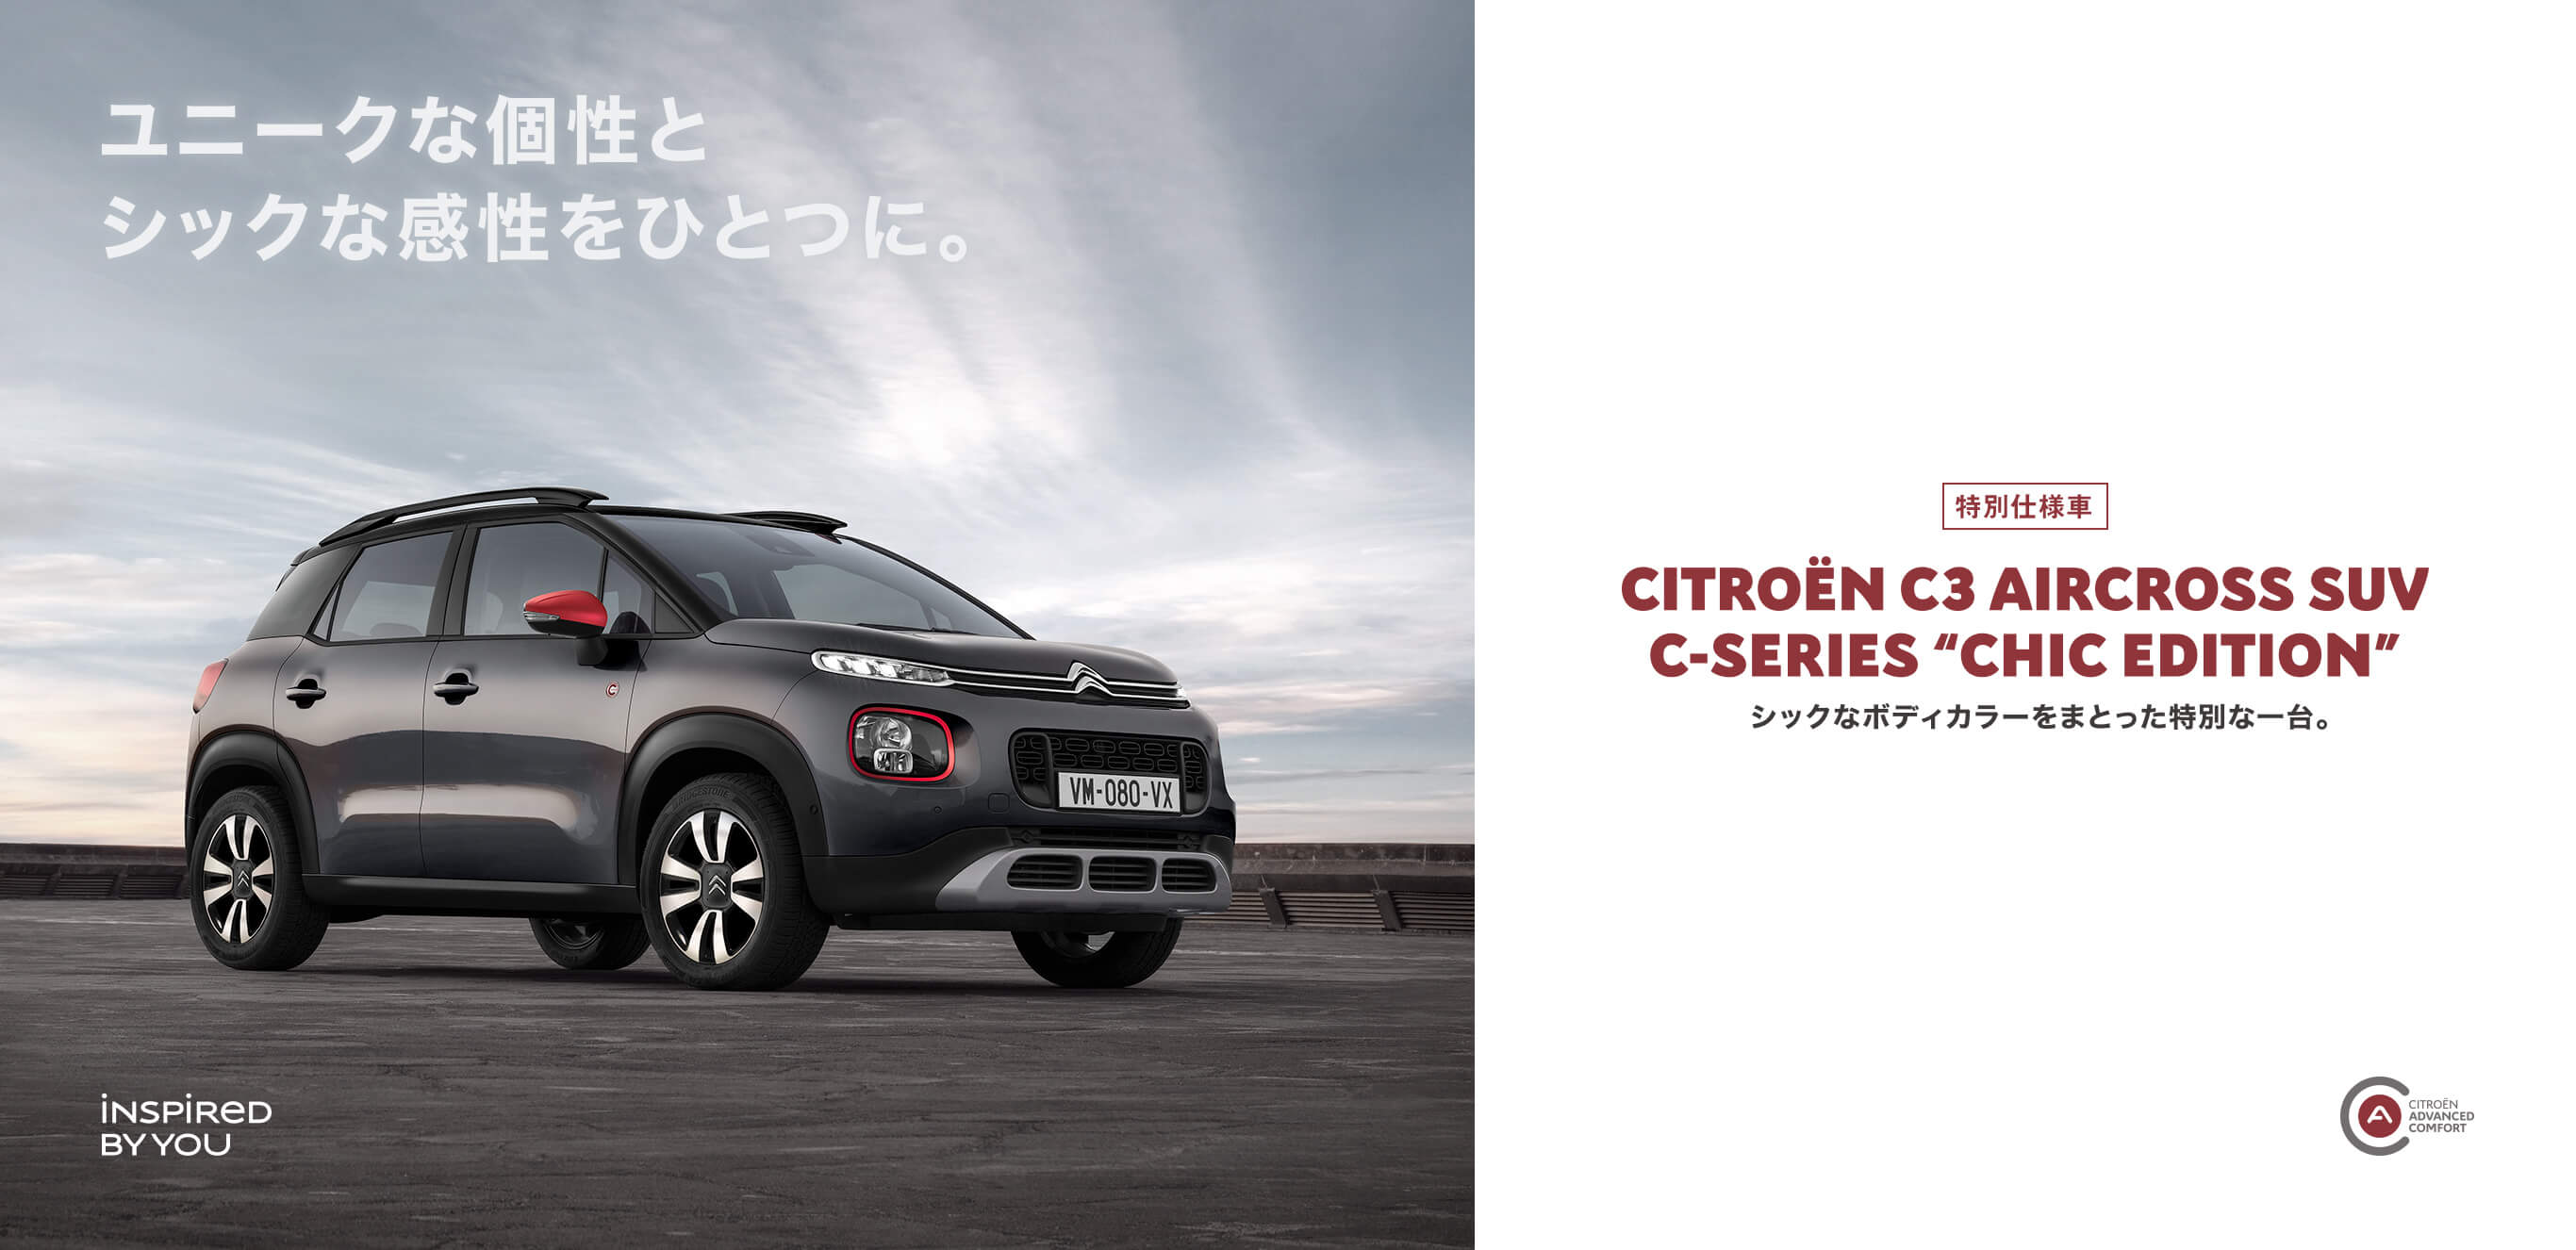 "シトロエン広島 CITROEN C3 AIRCROSS SUV C-SERIES ""CHIC EDITION"" 登場!"